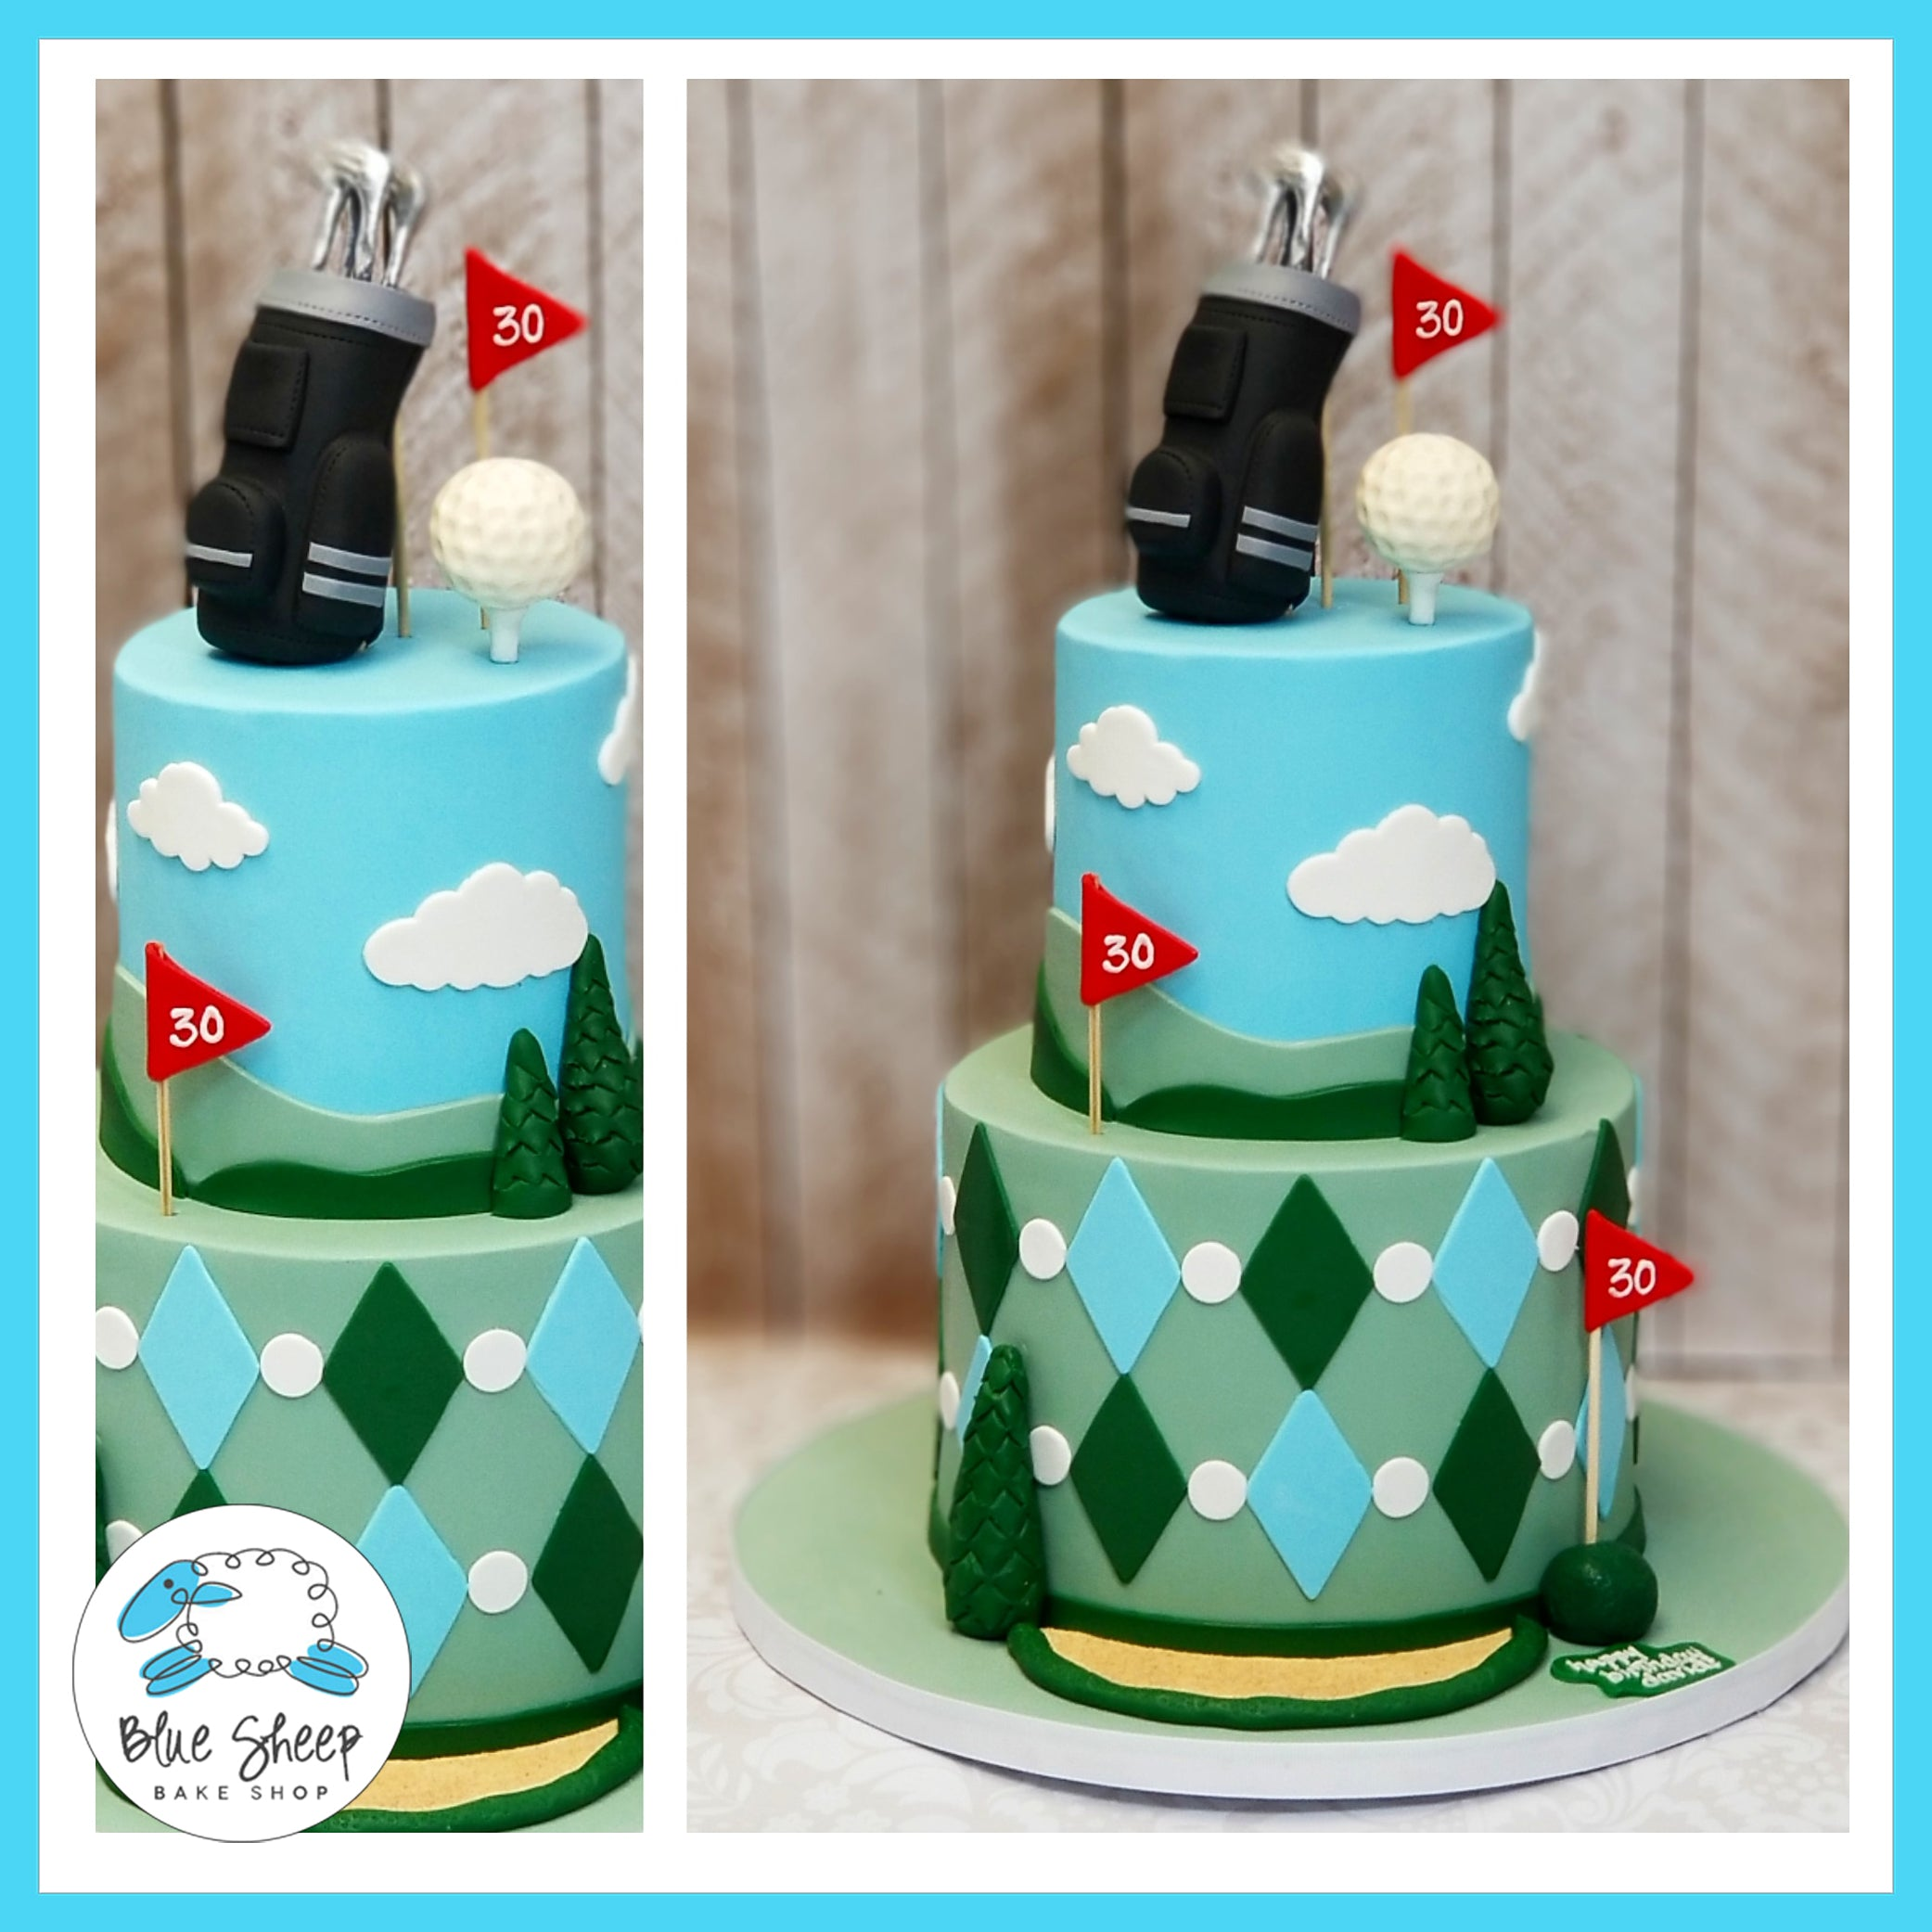 Magnificent Davids 30Th Birthday Golf Themed Birthday Cake Blue Sheep Bake Shop Funny Birthday Cards Online Aeocydamsfinfo